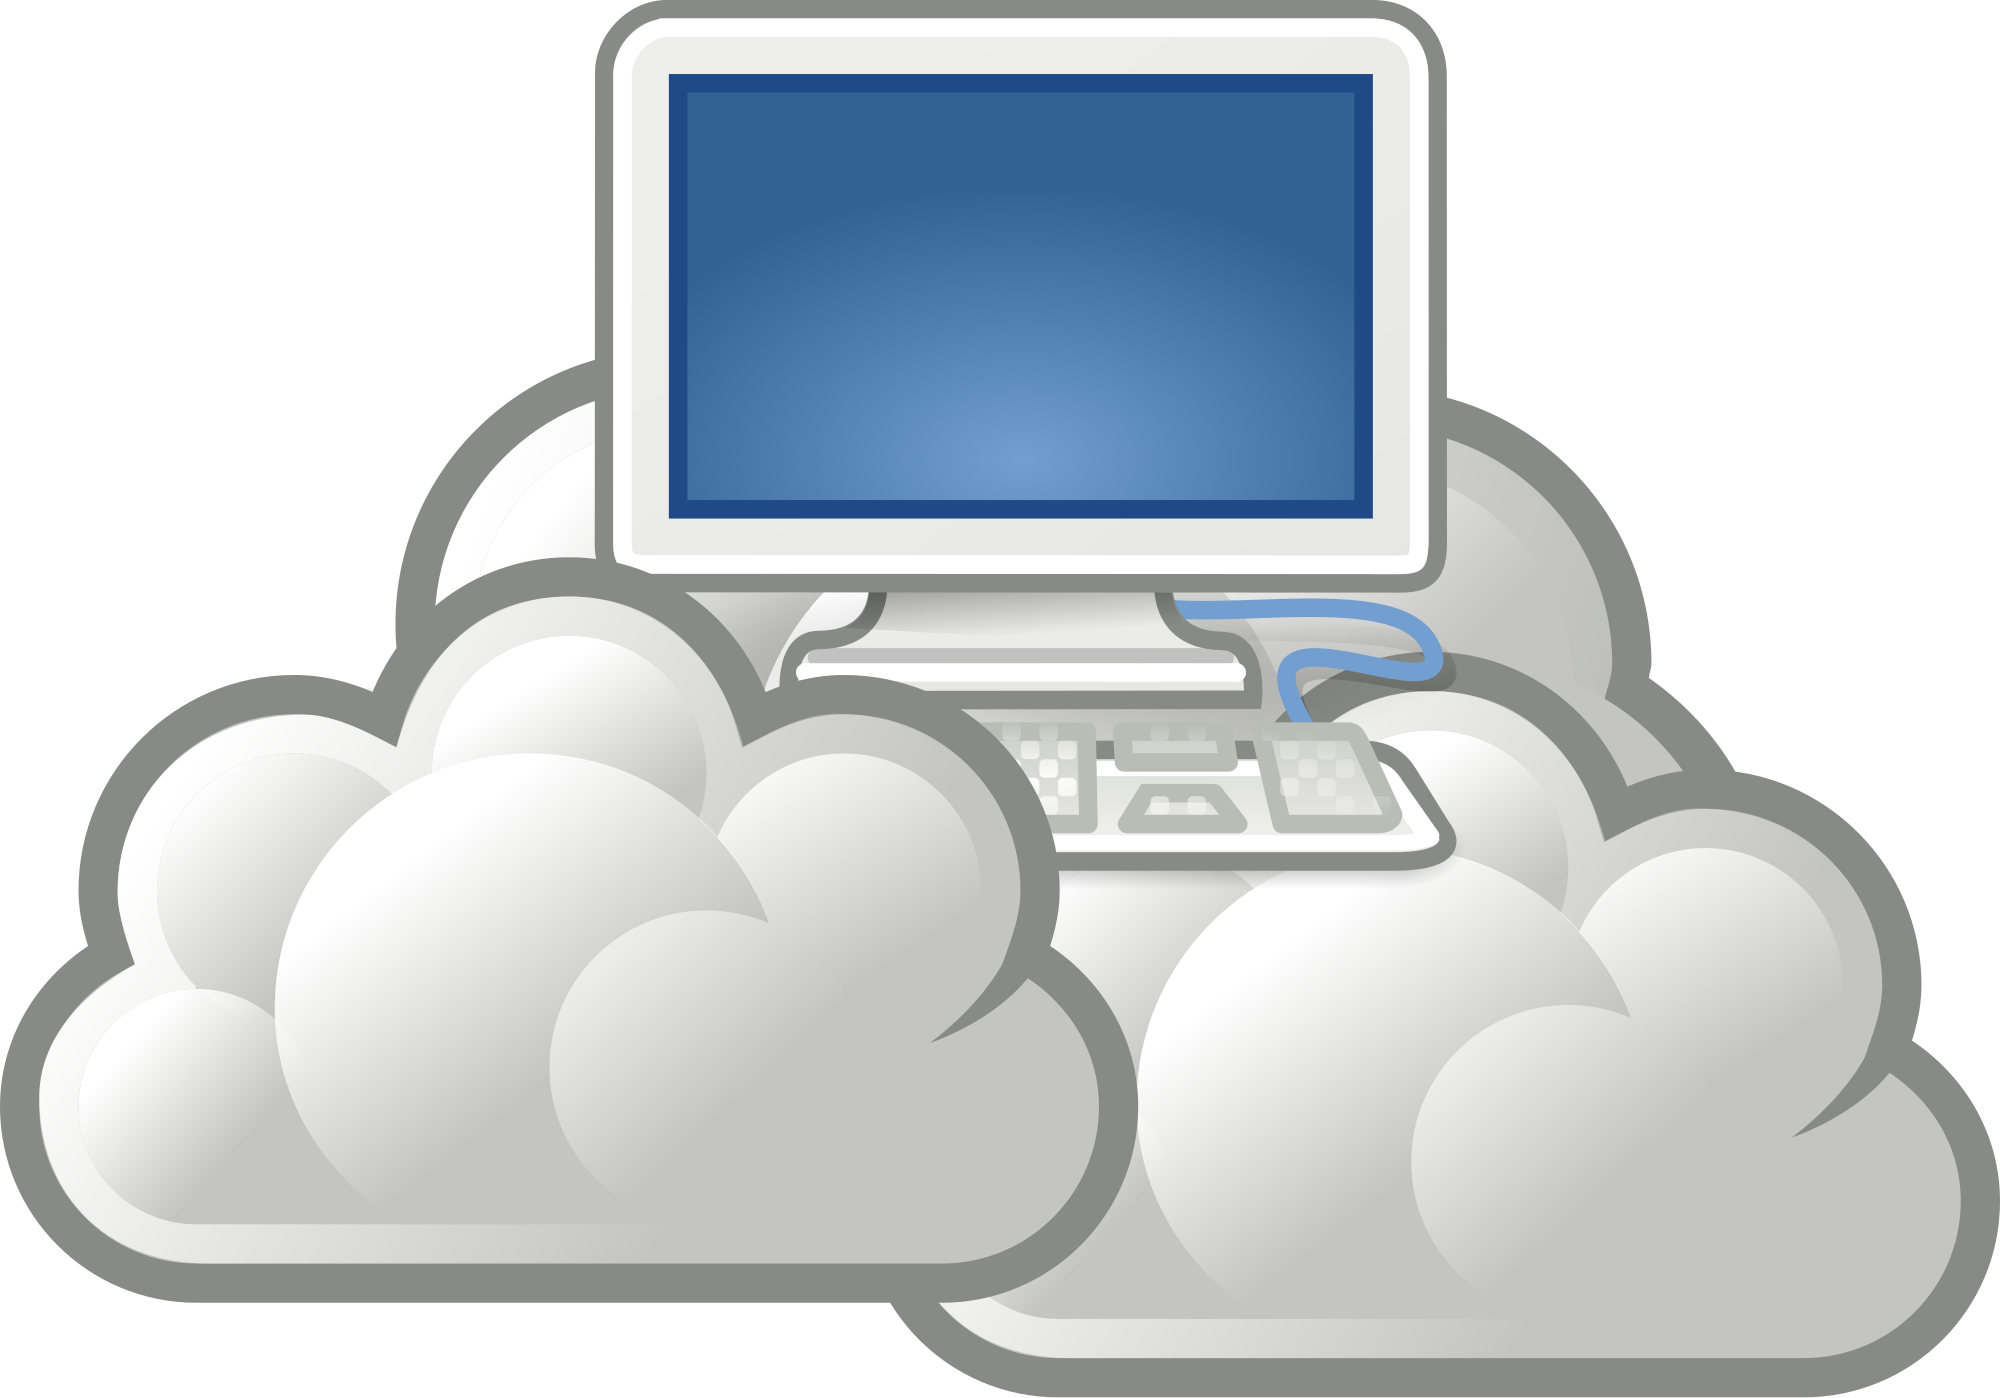 Dad at computer png. Even my understands cloud